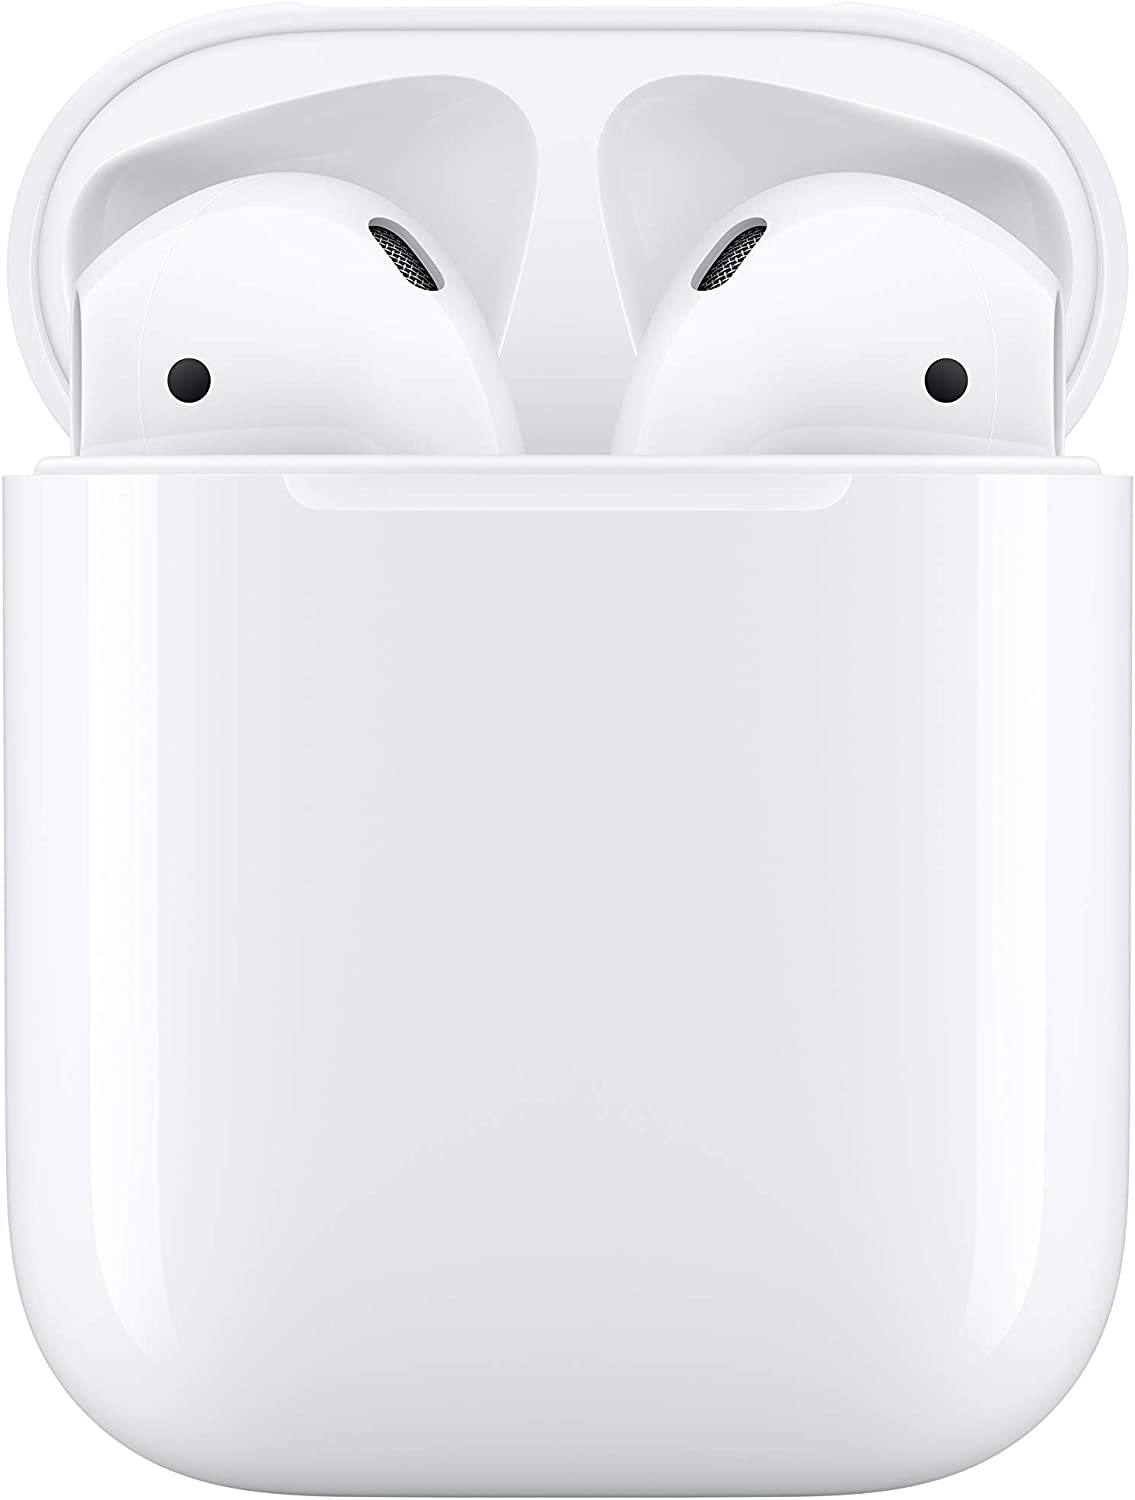 Amazon: AirPods 2 on sale! The Price starts at 9